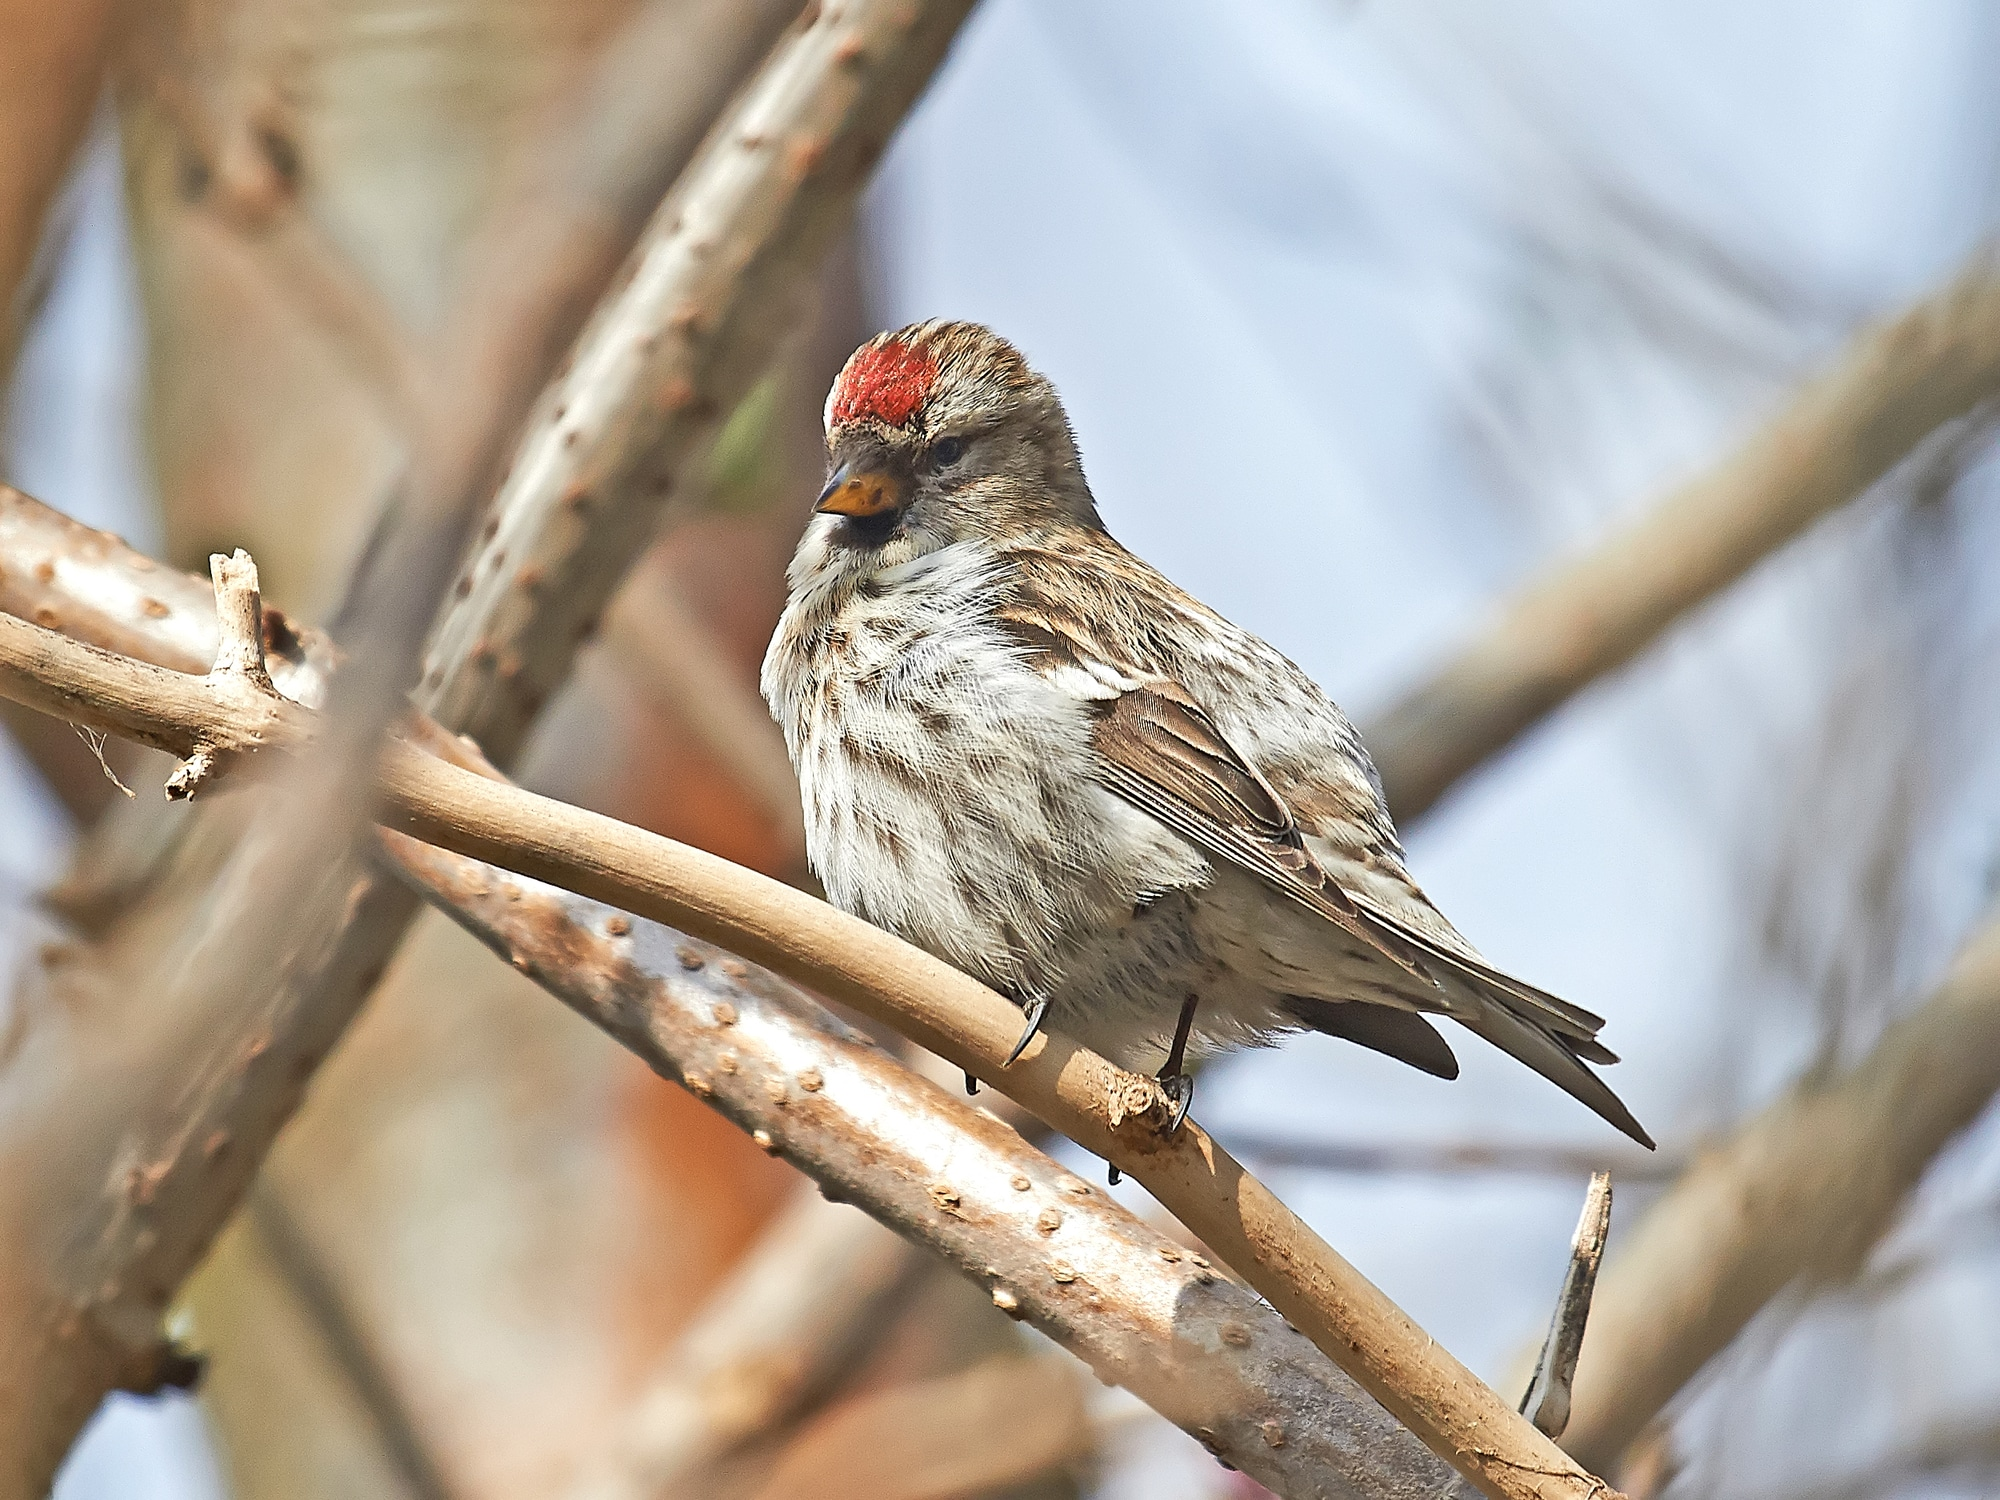 Common Redpoll resting in its natural habitat